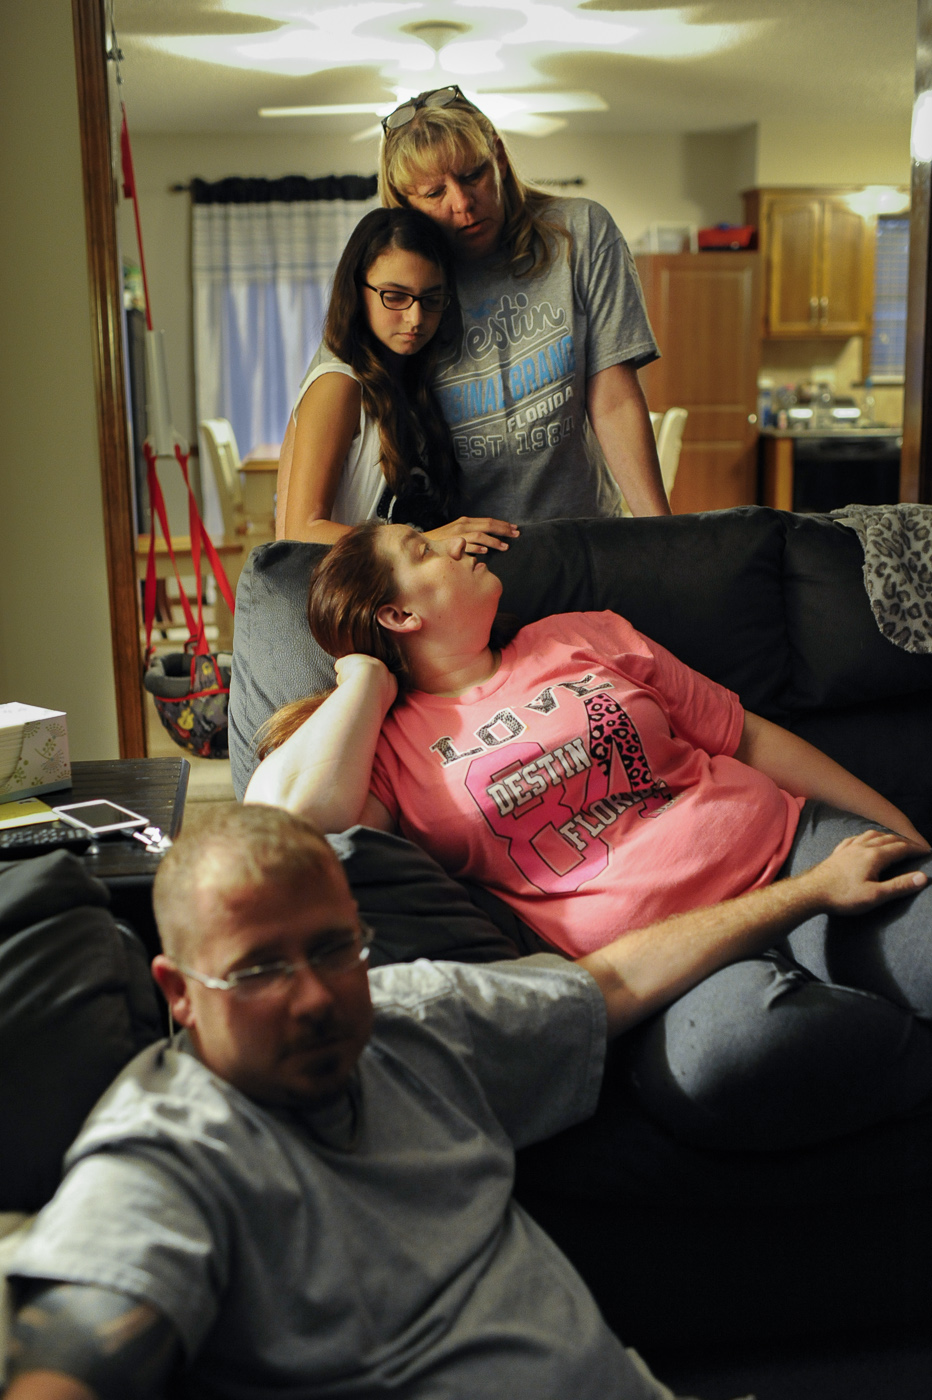 Detective Nancy Penrod shares a moment at home with her daughter Ashley, her boyfriend Heath and 13 year old granddaughter Bailee.